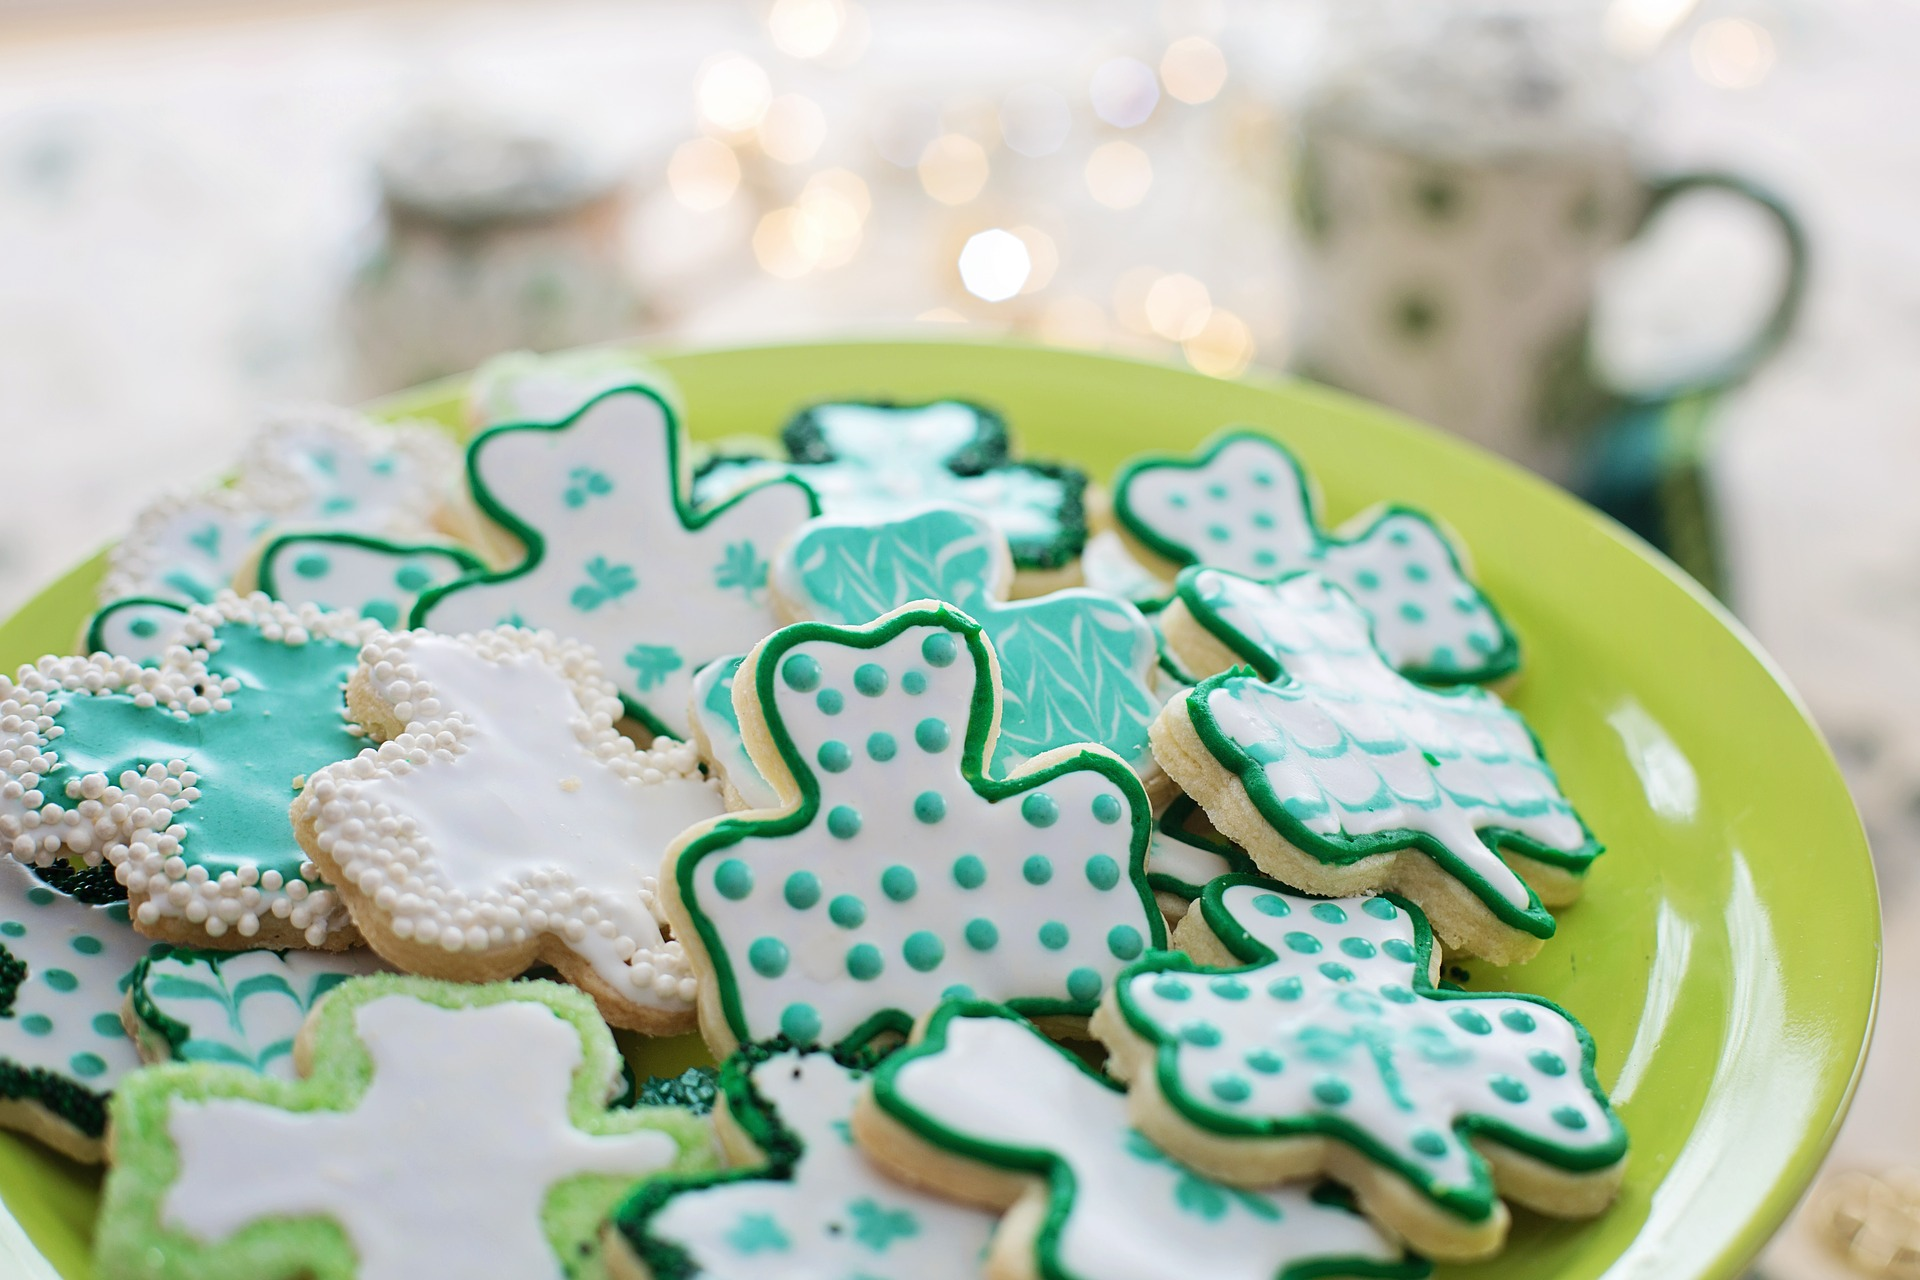 Image of sweet treats for St. Patrick's Day